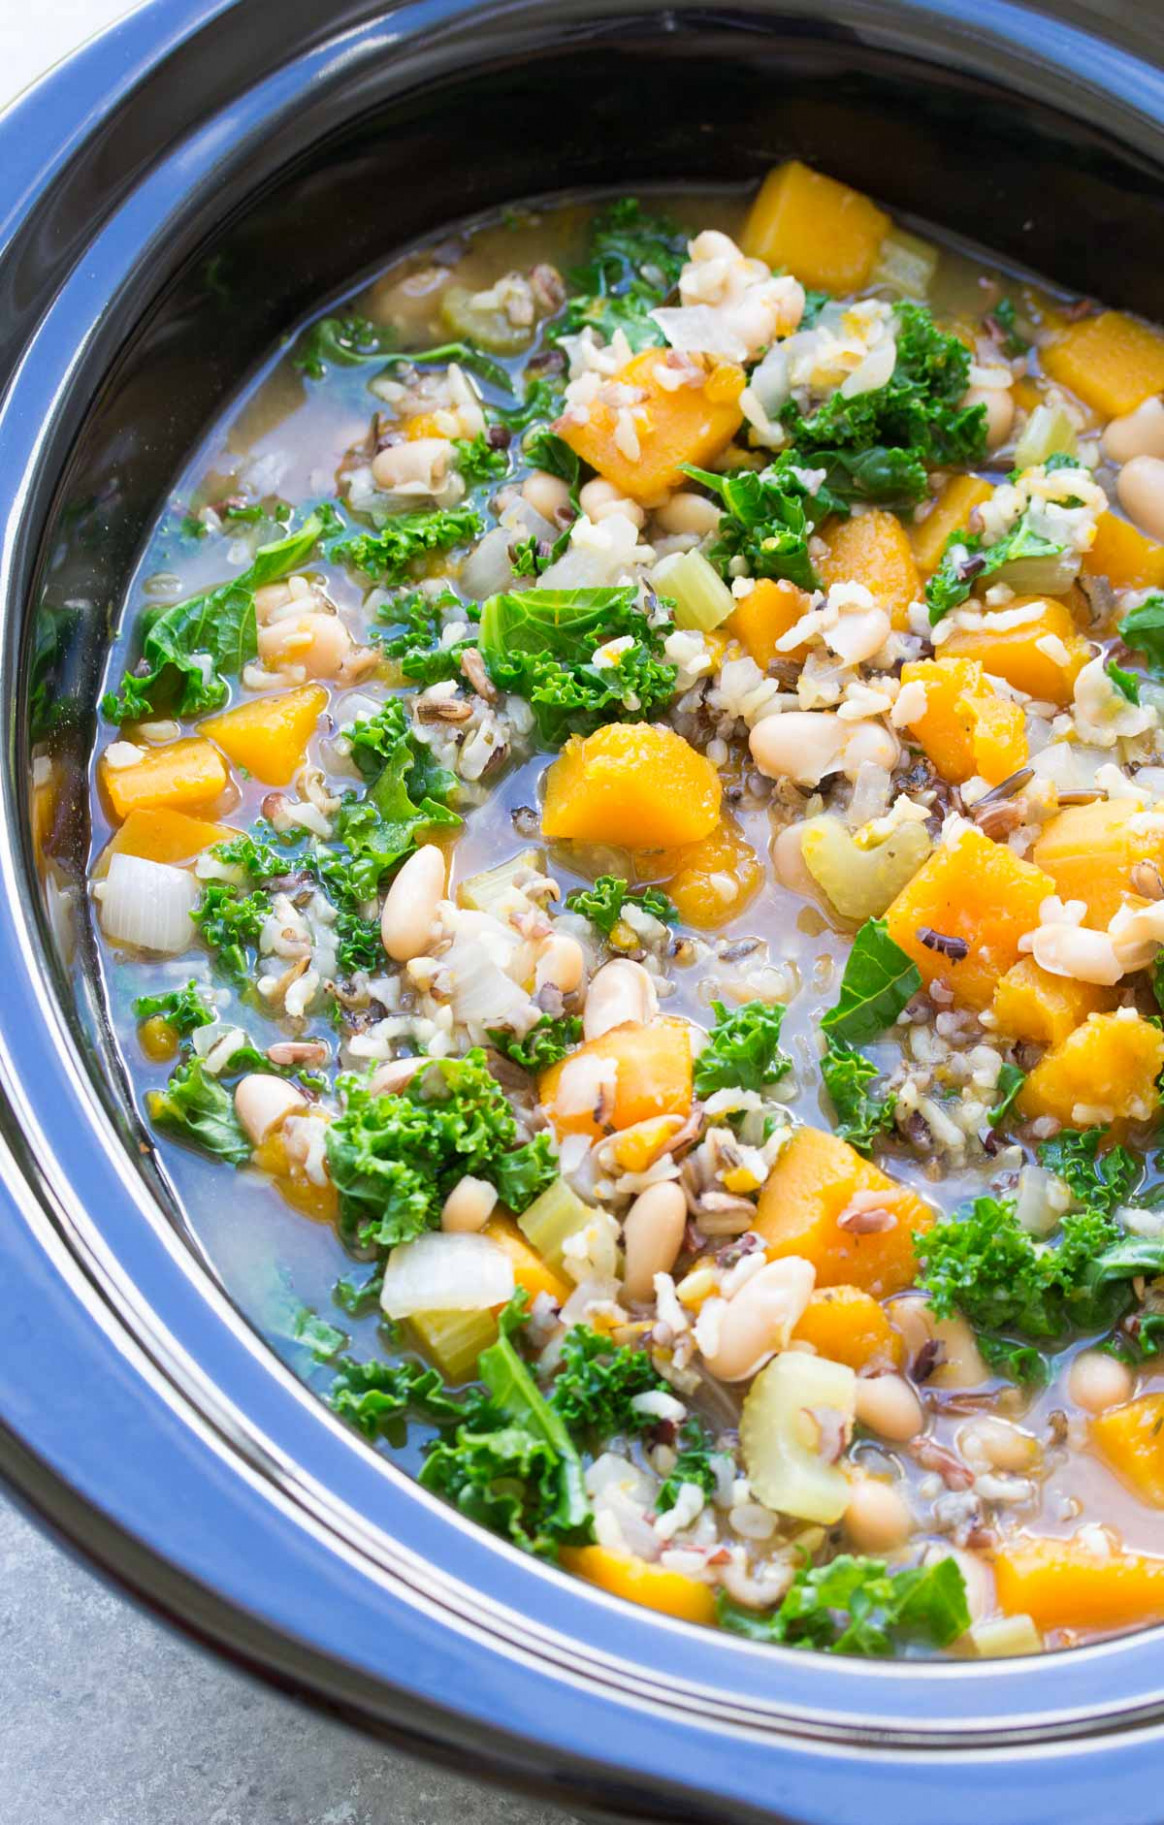 Slow Cooker Wild Rice Vegetable Soup - great vegetarian recipes